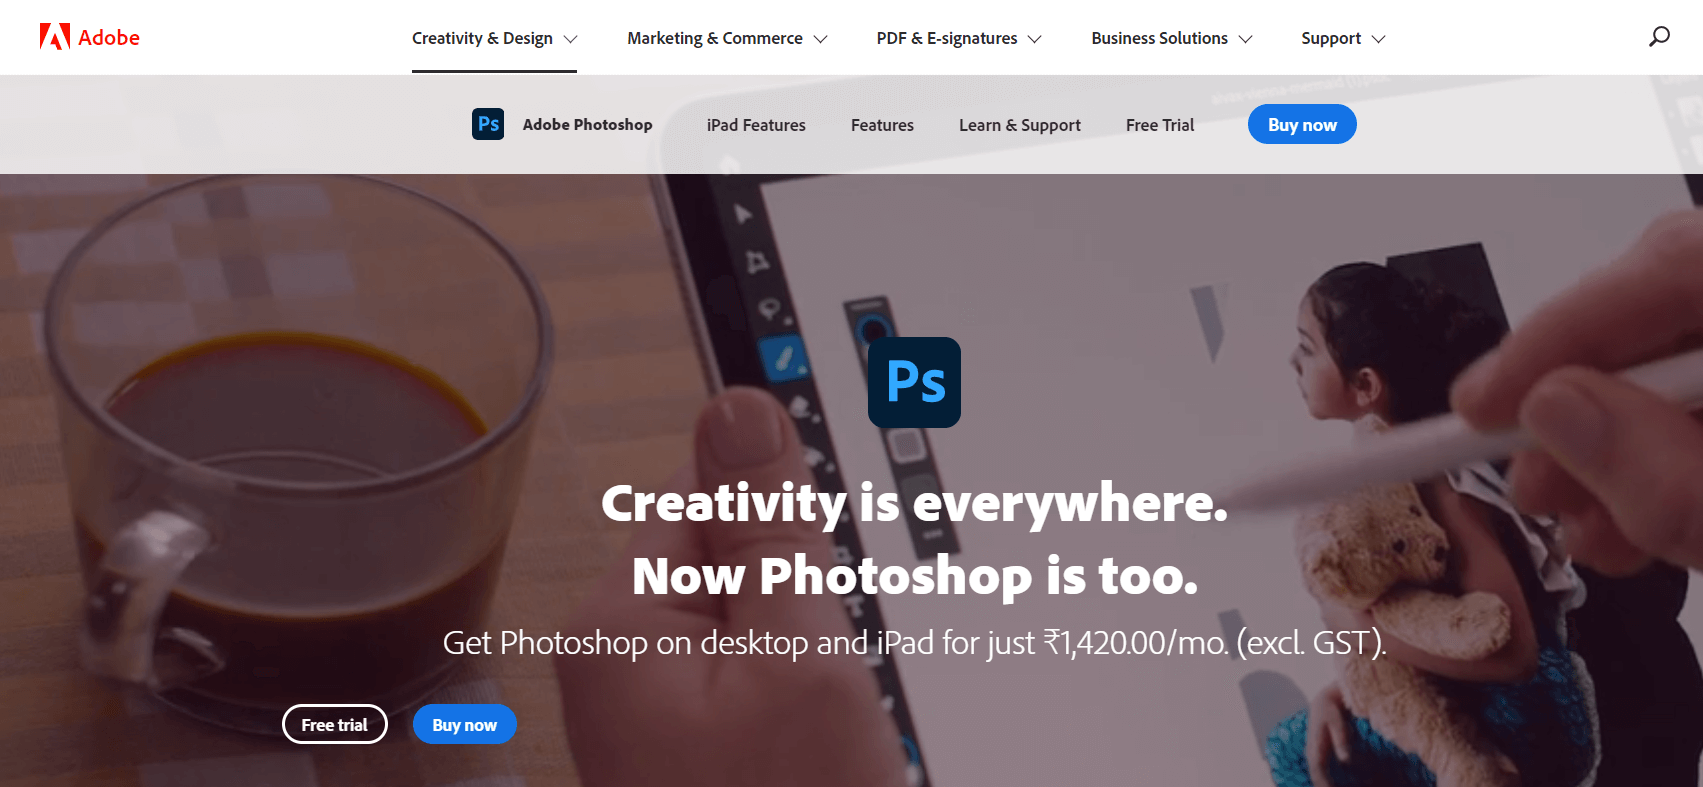 Adobe Photoshop CC - Best Photo Editing Software